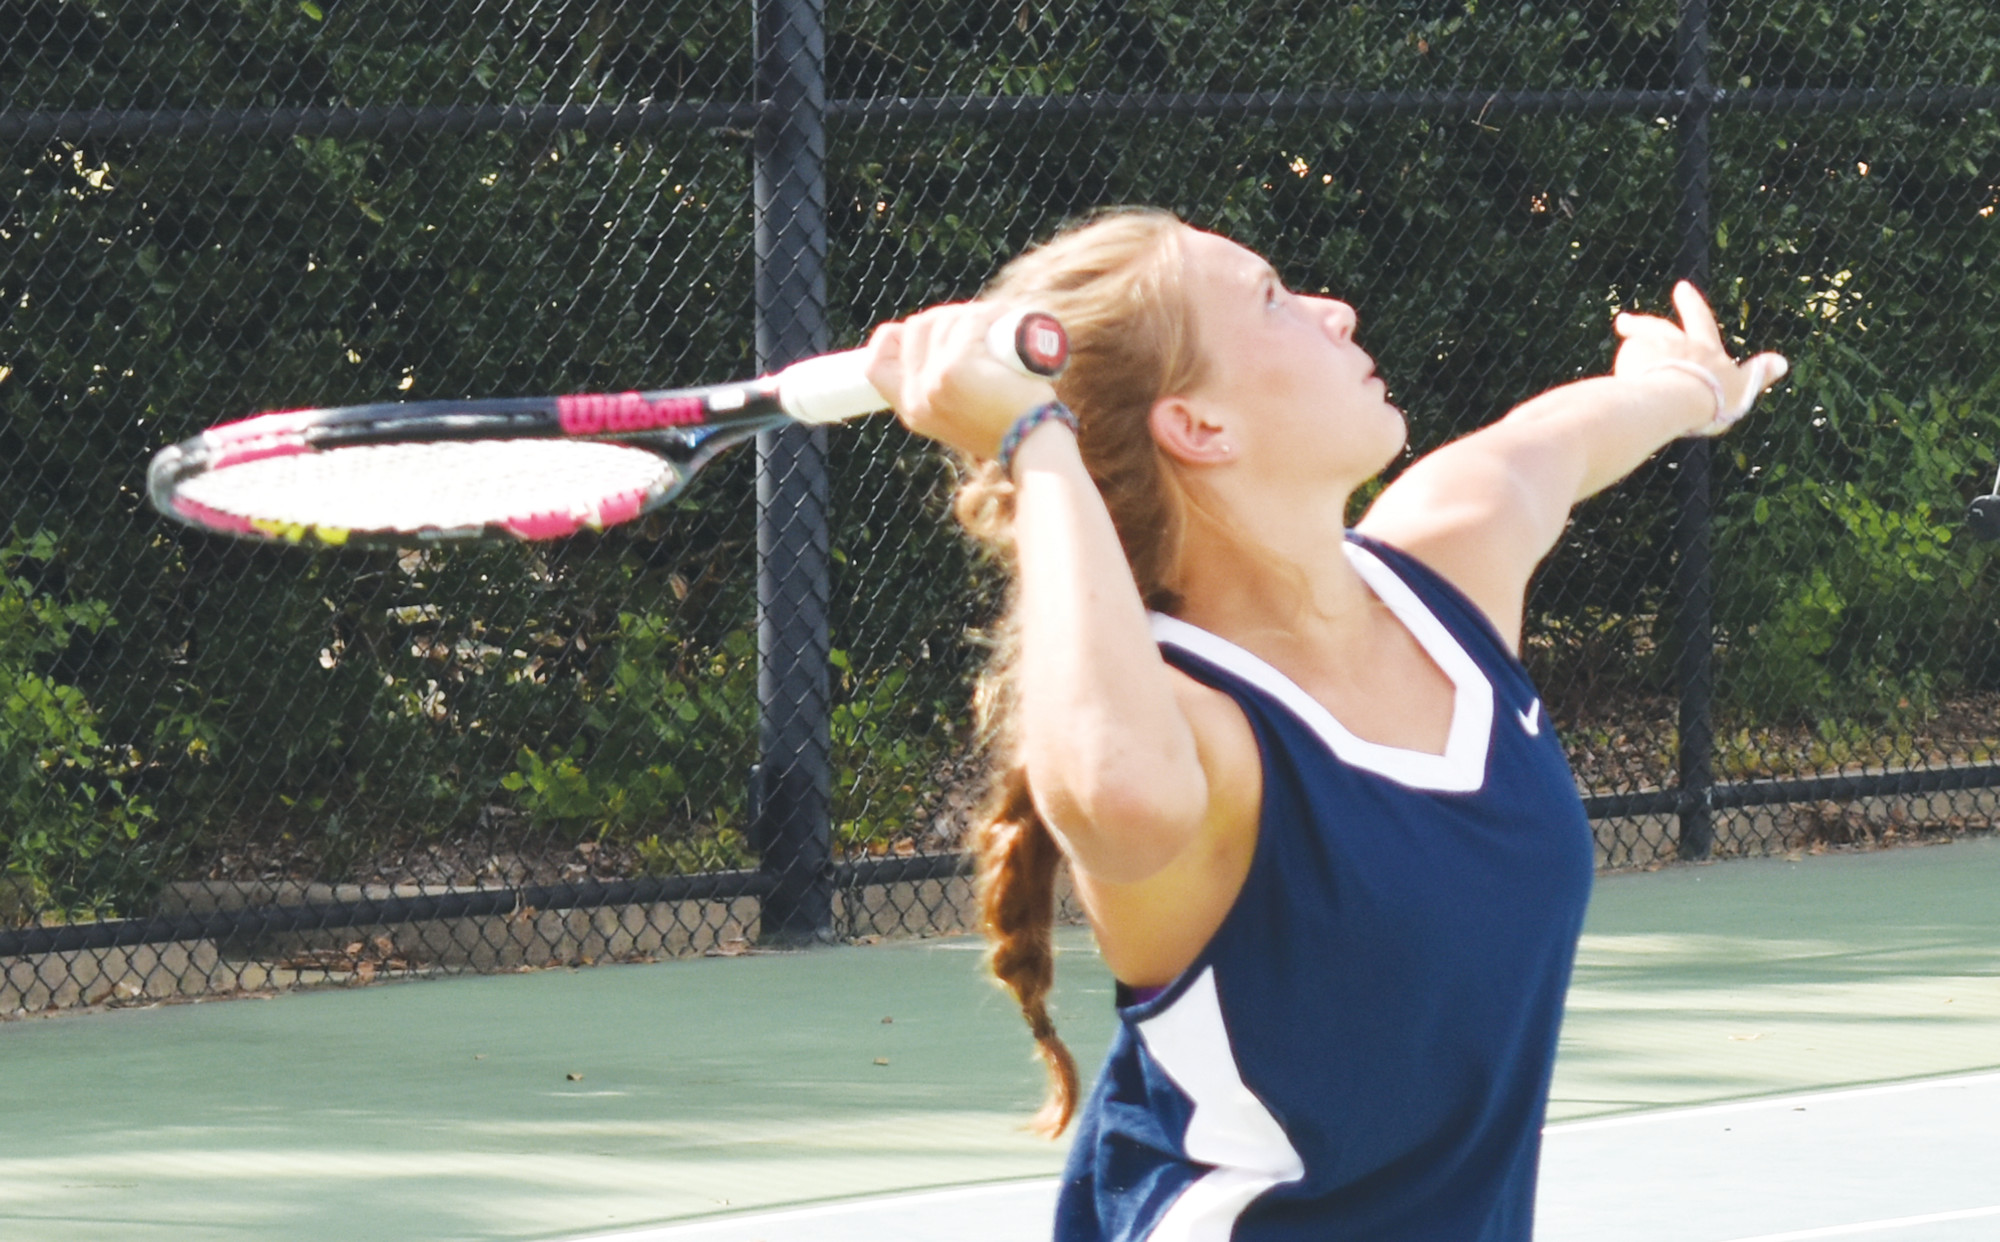 Wilson Hall's Carly Allred eyes a serve during Tuesday's match against Florence Christian at Palmetto Tennis Center.